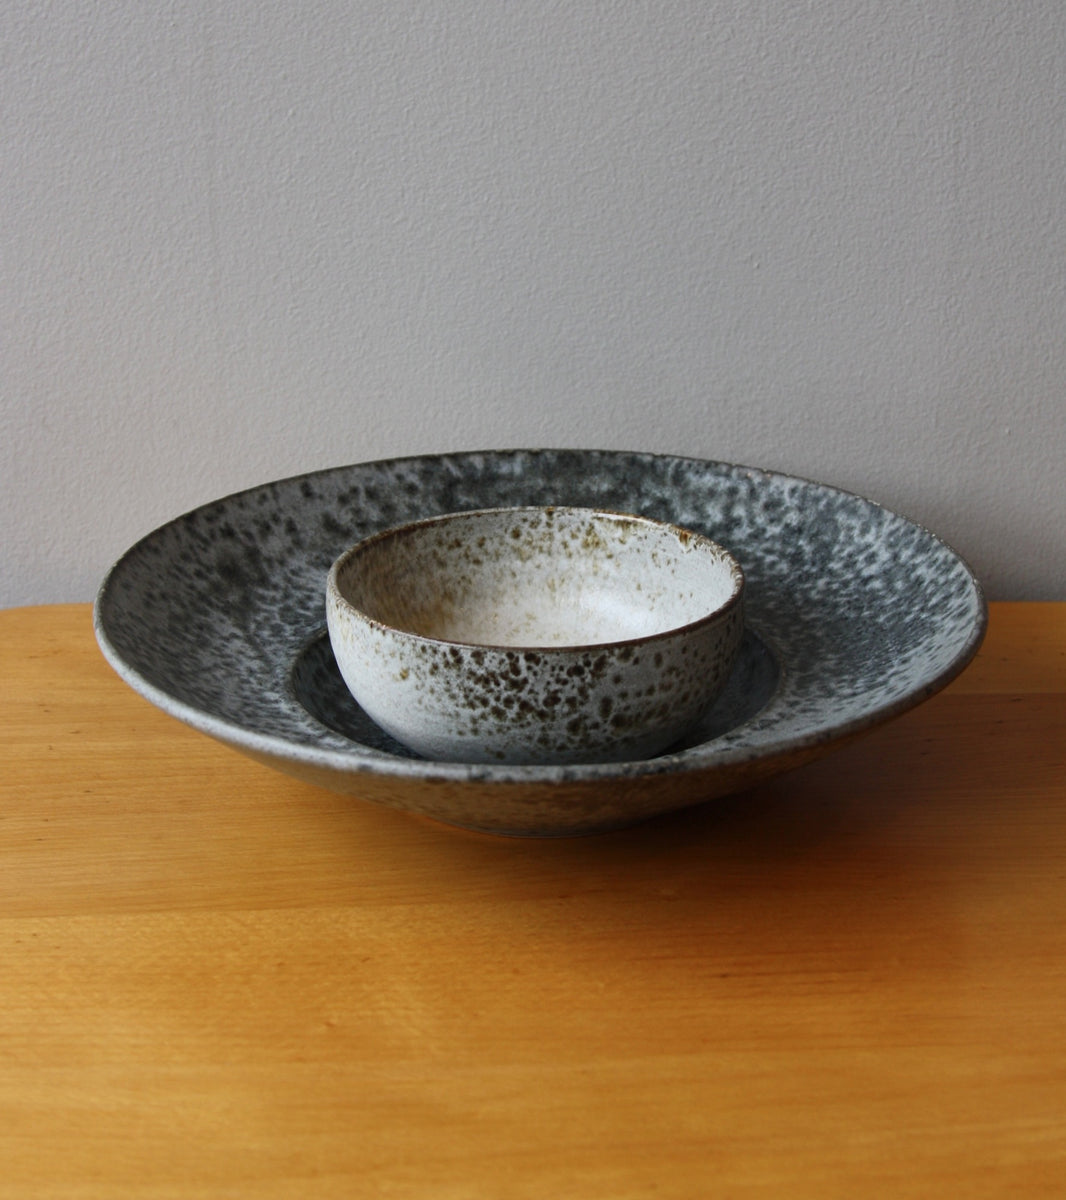 Large Flat Out Bowl 11Grey Glaze Kasper Würtz - Image 6